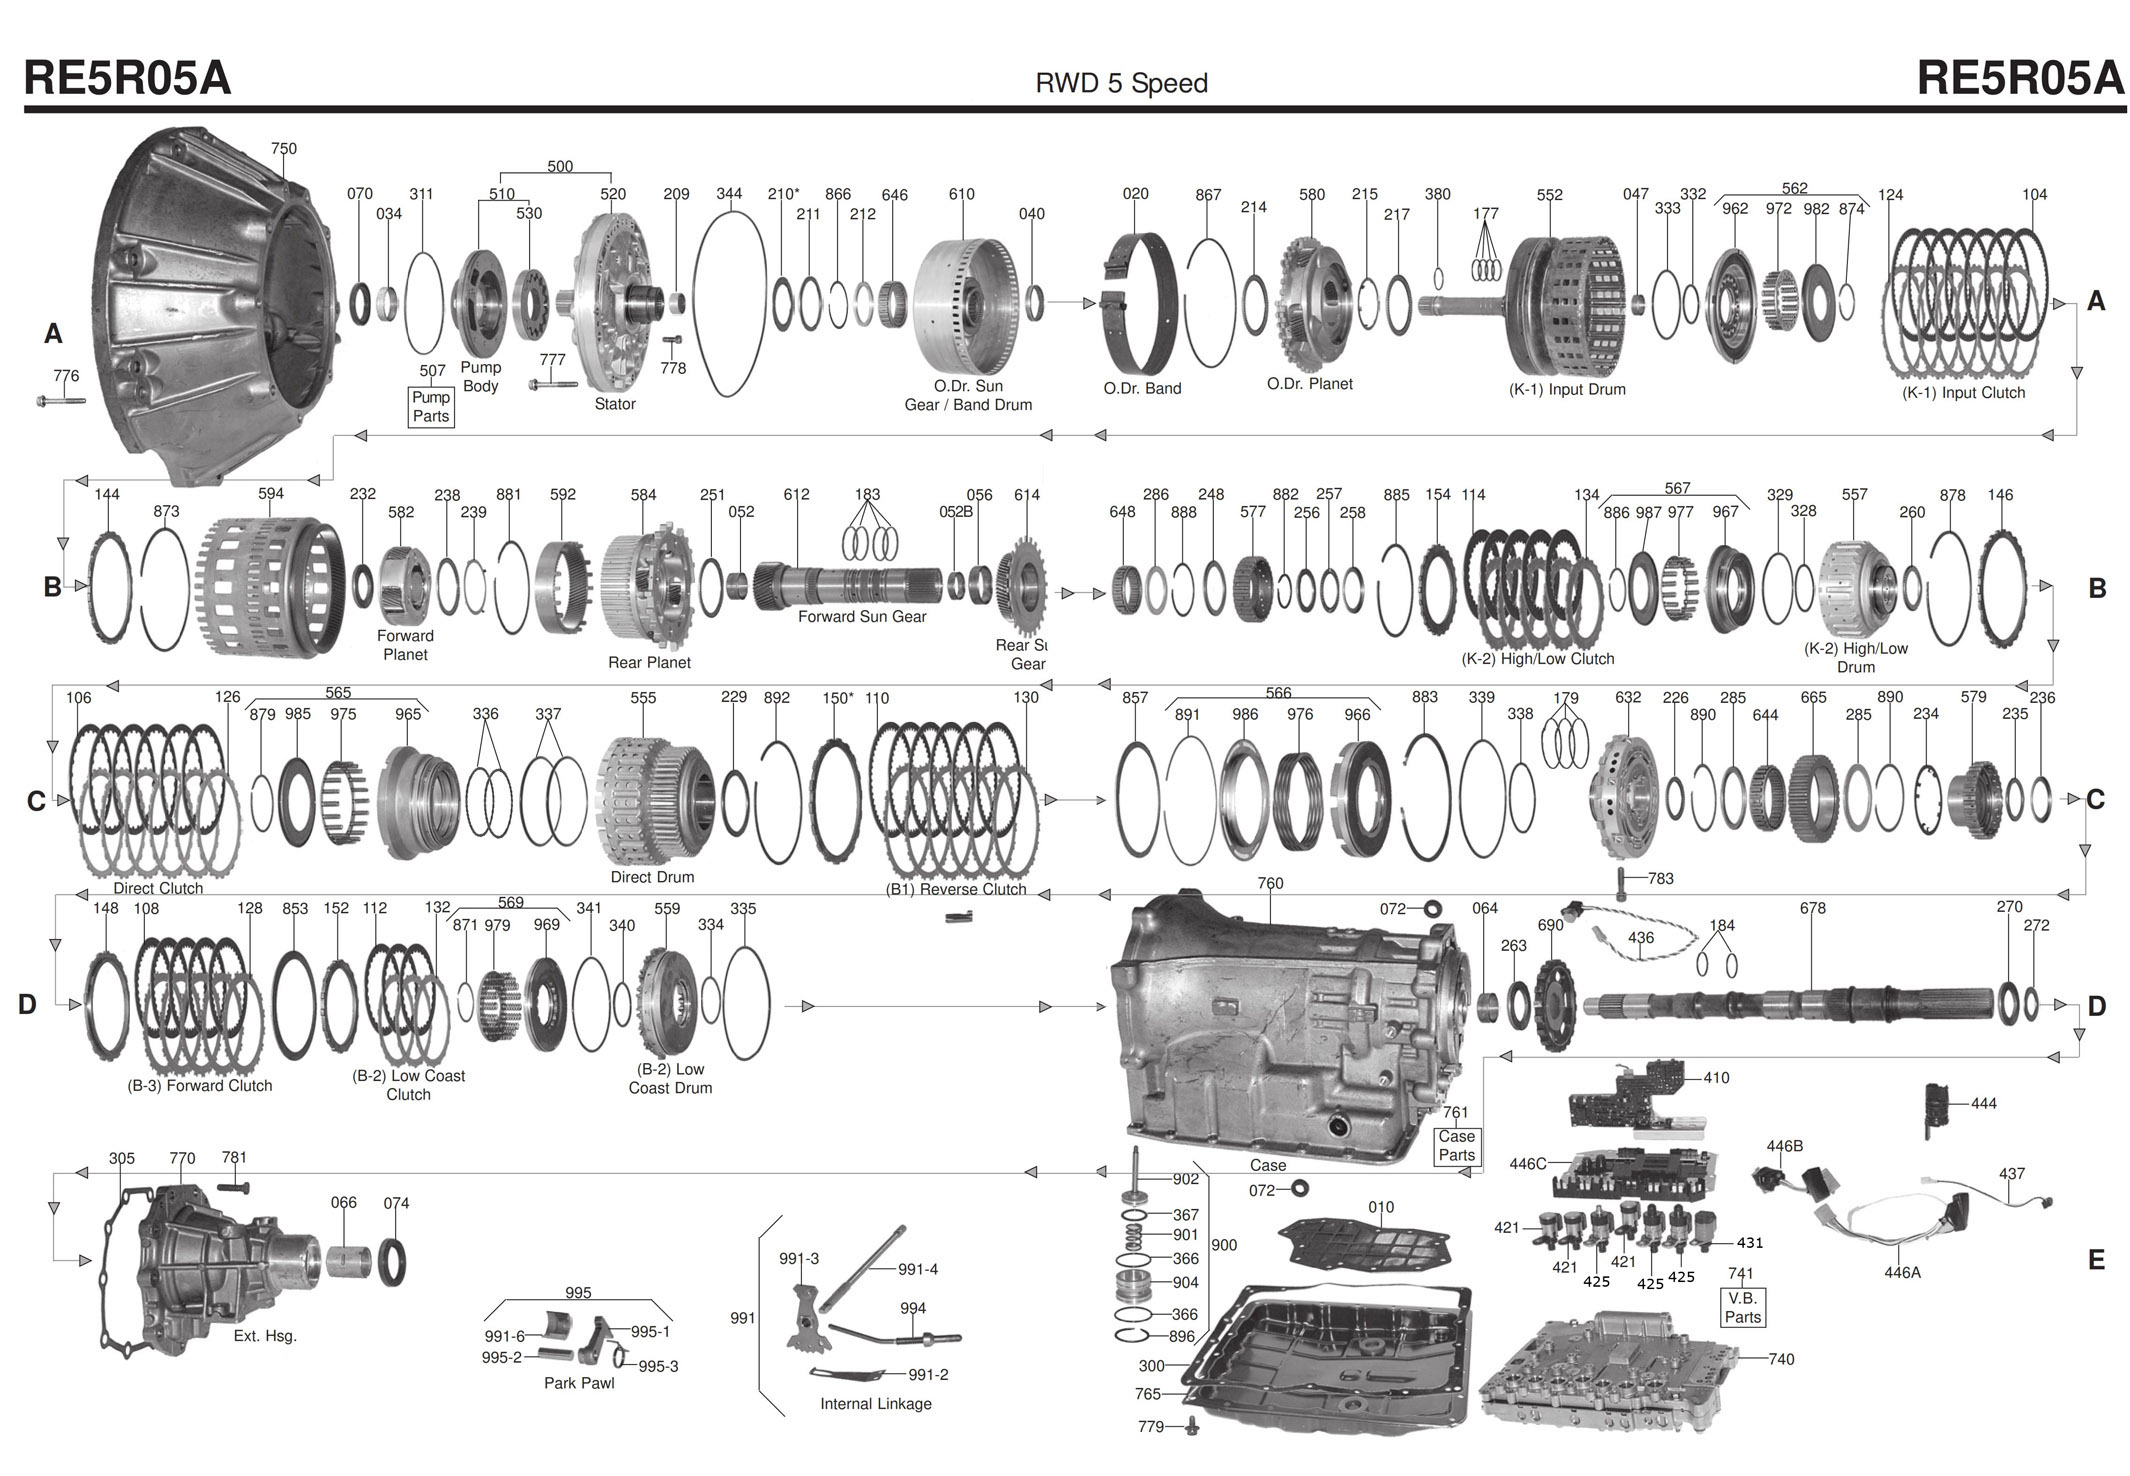 Transmission repair manuals RE5R05A (JR507E